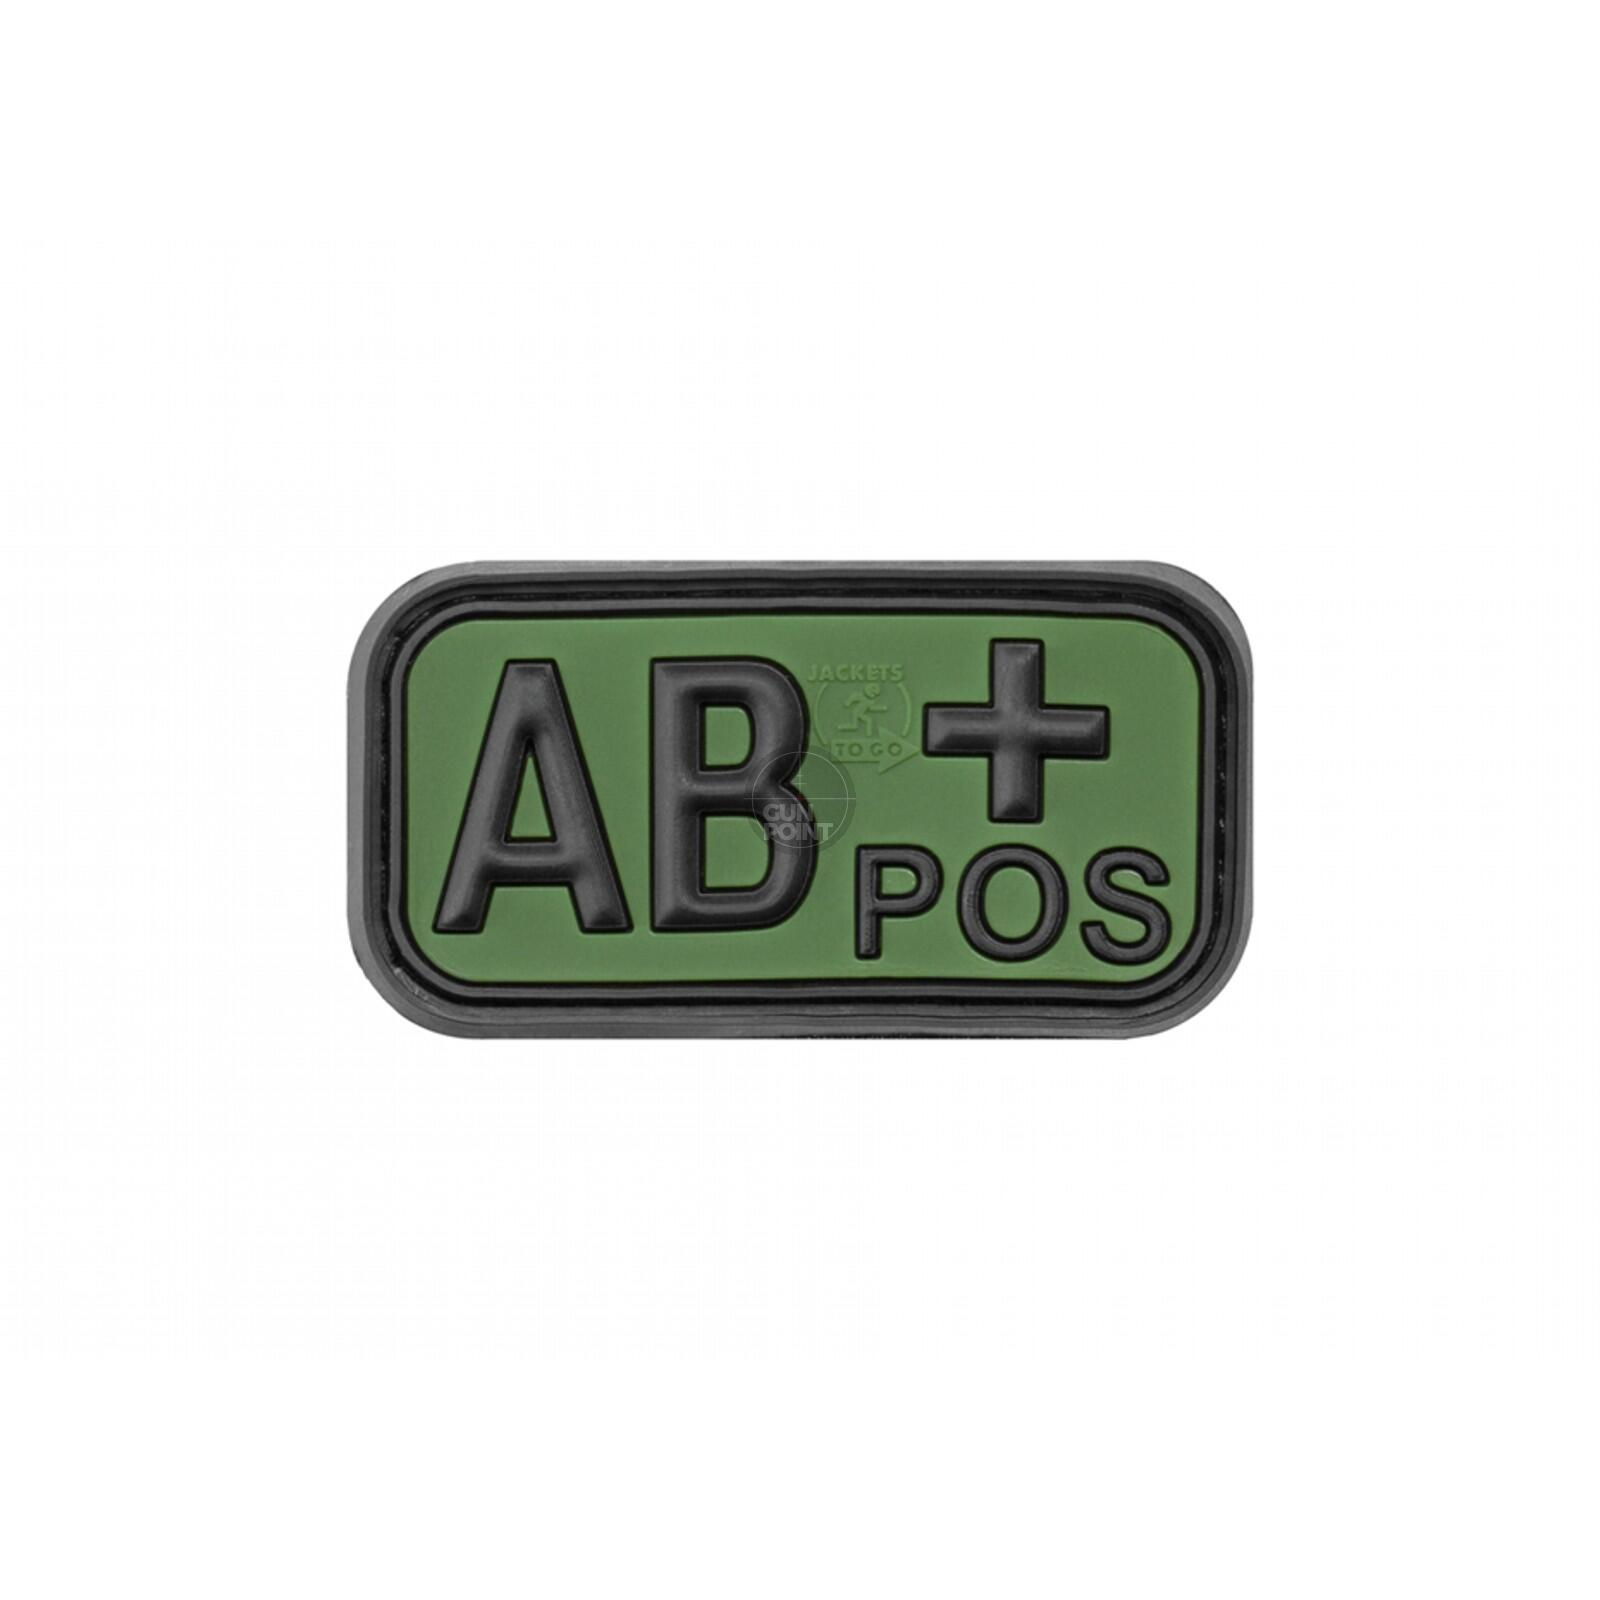 JTG Bloodtype Rubber Patch AB Pos Forest